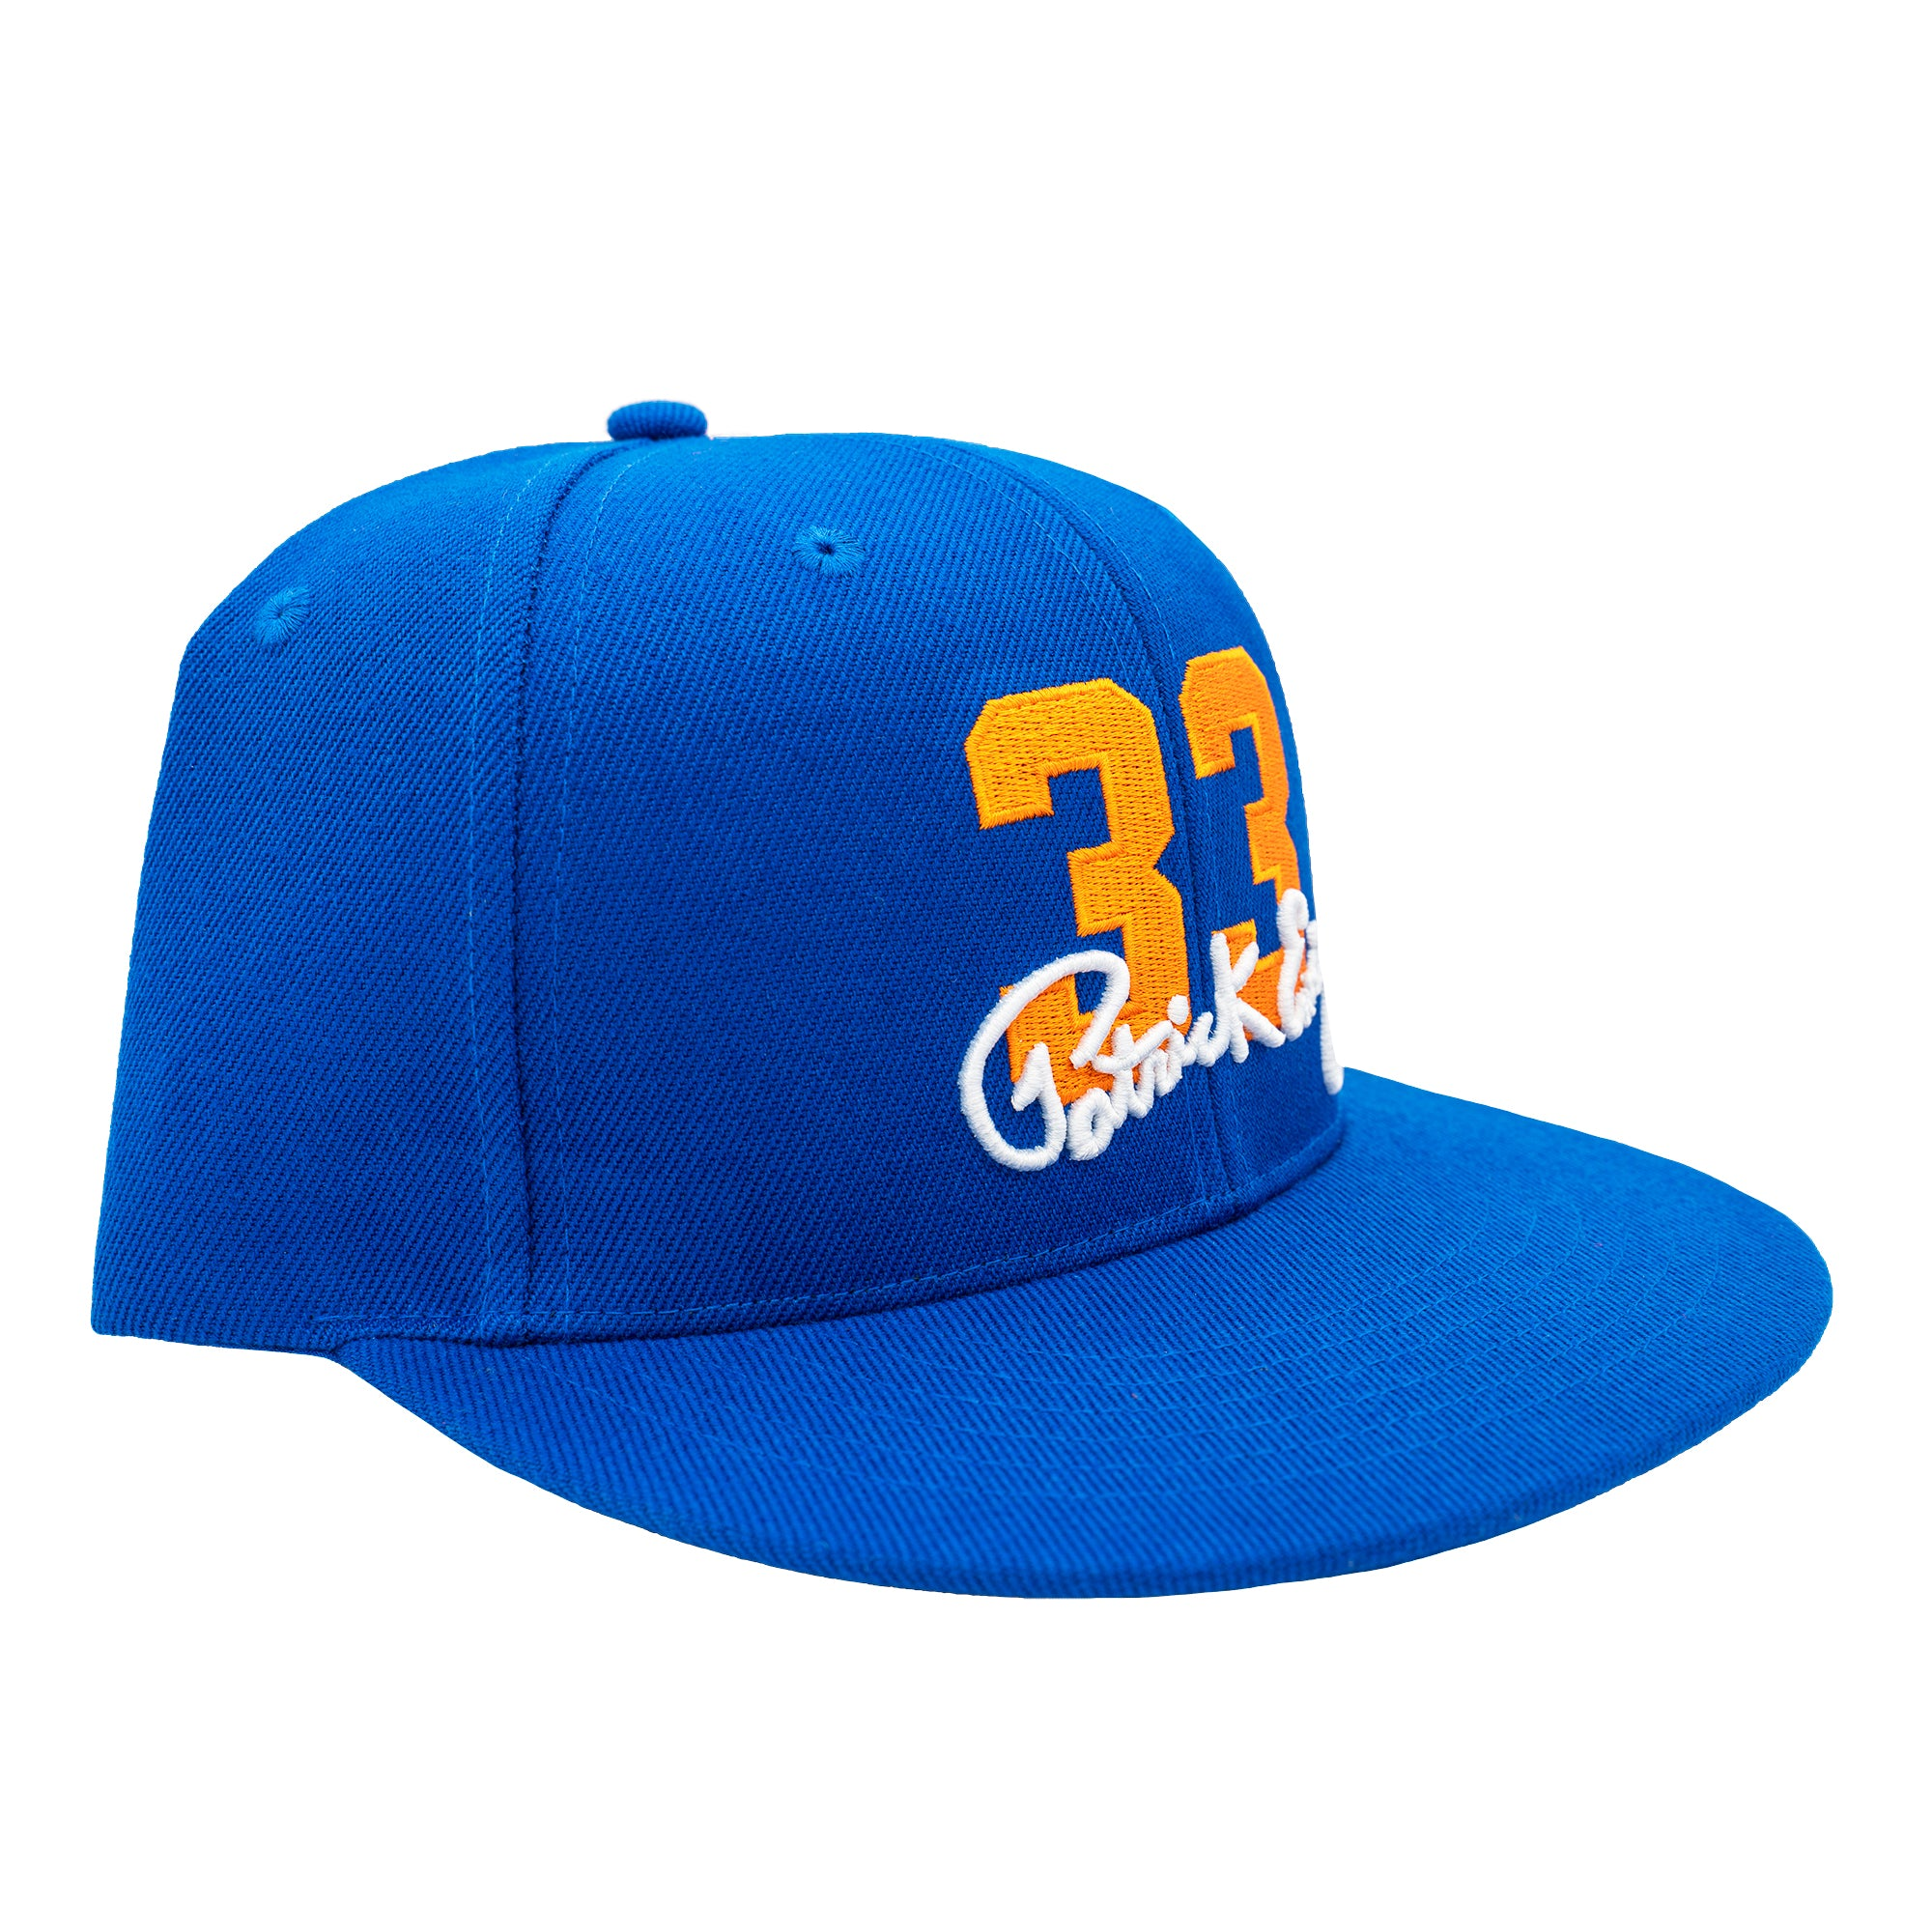 Ewing Royal 33 Hat